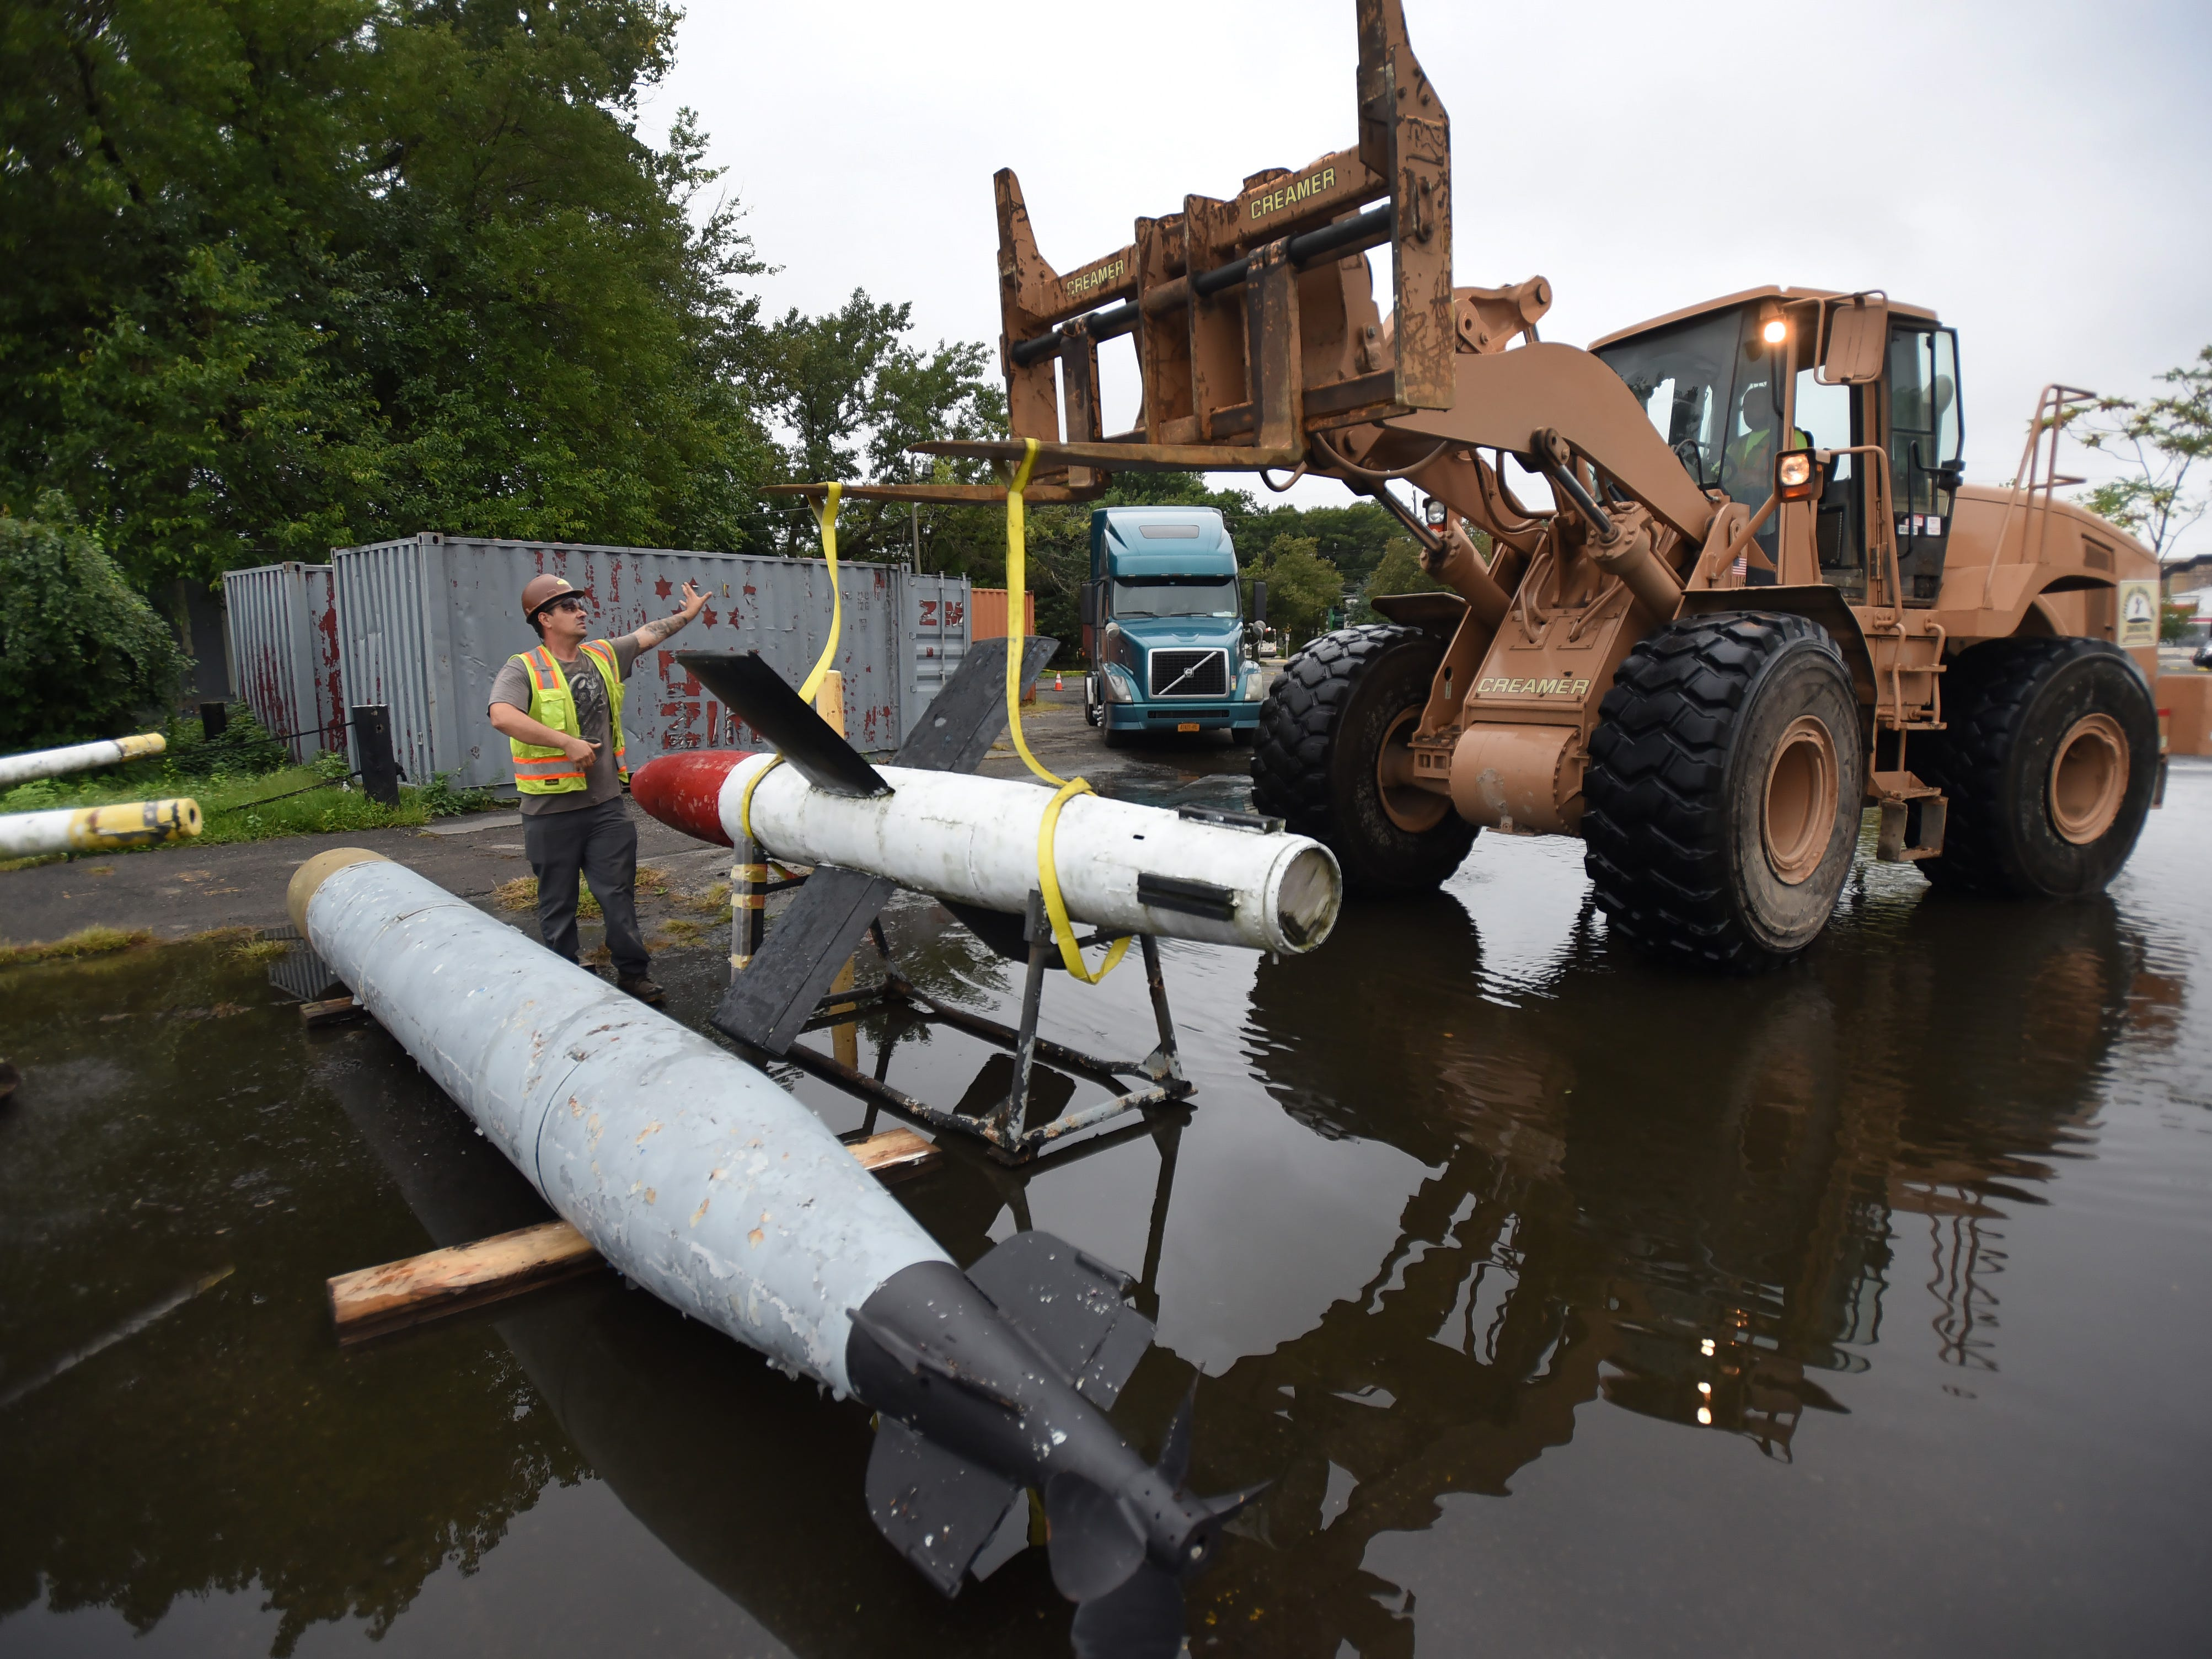 Two torpedoes are placed for loading later into the truck after being removed from the original site at the NJ Naval Museum in Hackensack on 09/12/18.  The 1945 USS Ling SS297, 312 foot long submarine remains at the site.